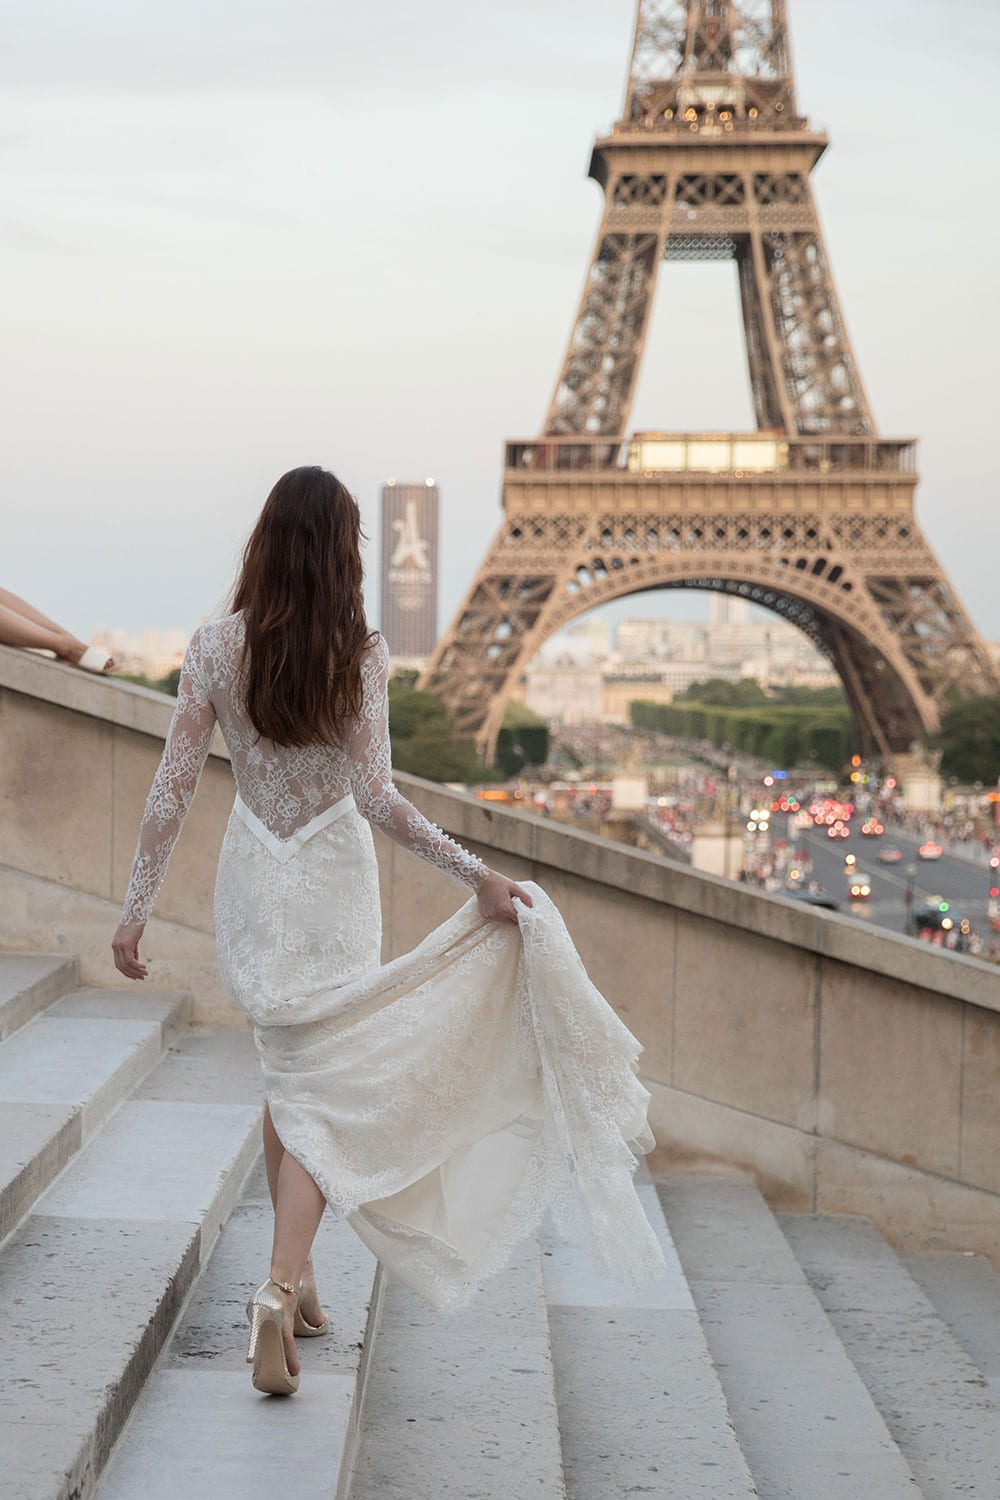 Model wearing Vinka Design Deanna Wedding Dress, a Lace Wedding Gown with Sleeves on steps looking towards the Eiffel Tower in Paris